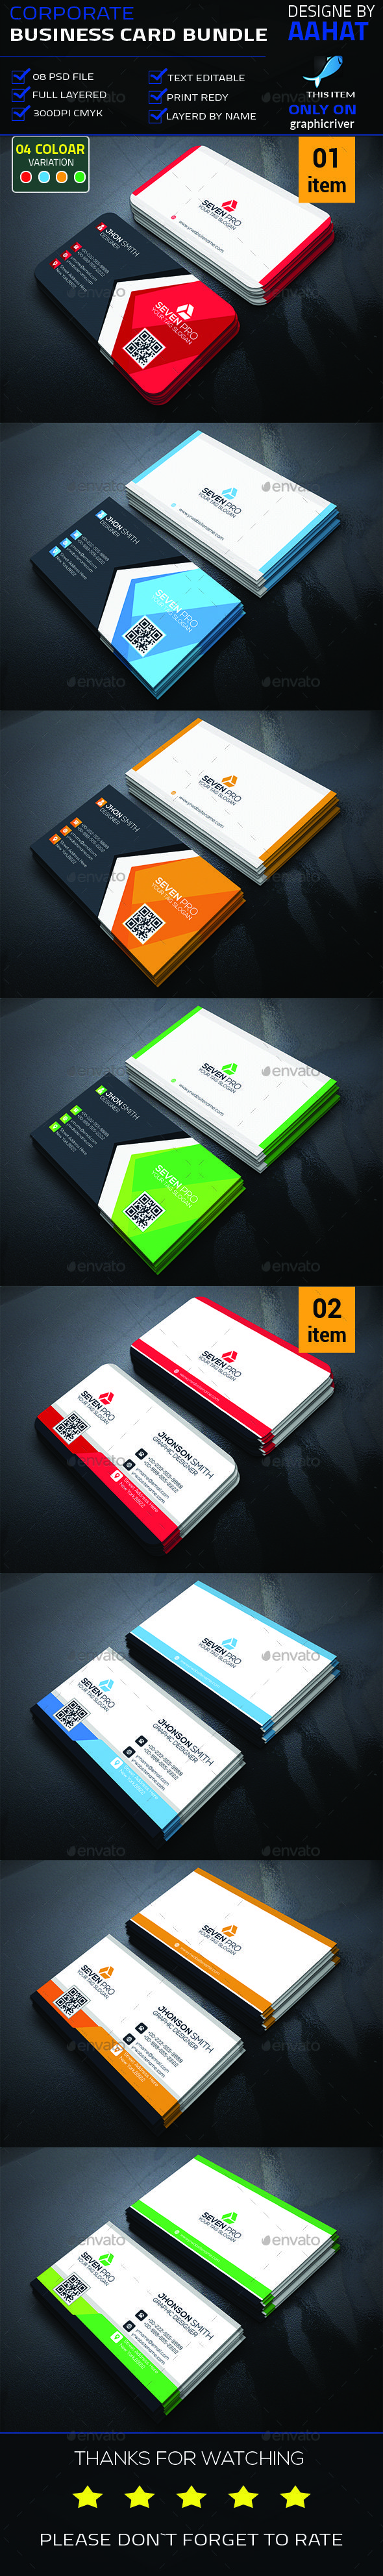 12 best business cards images on pinterest